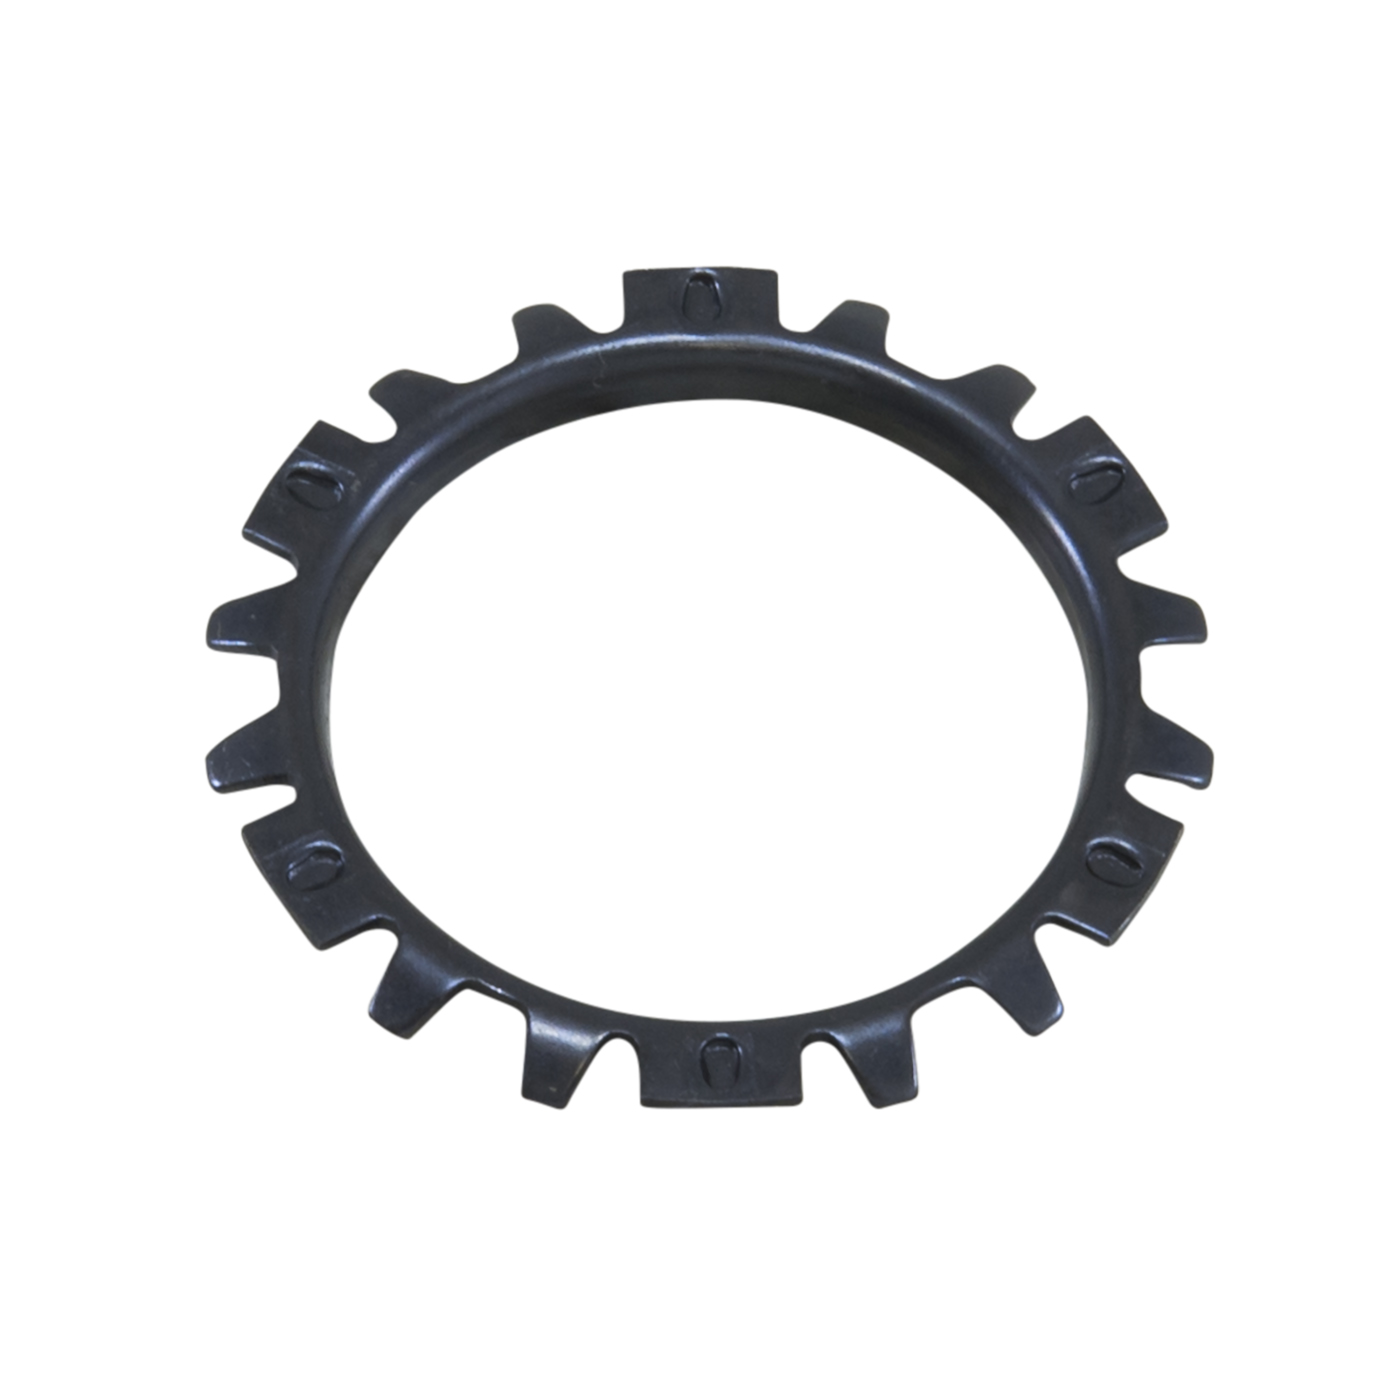 YSPRET-002 - Pilot Bearing retainer for Ford 9